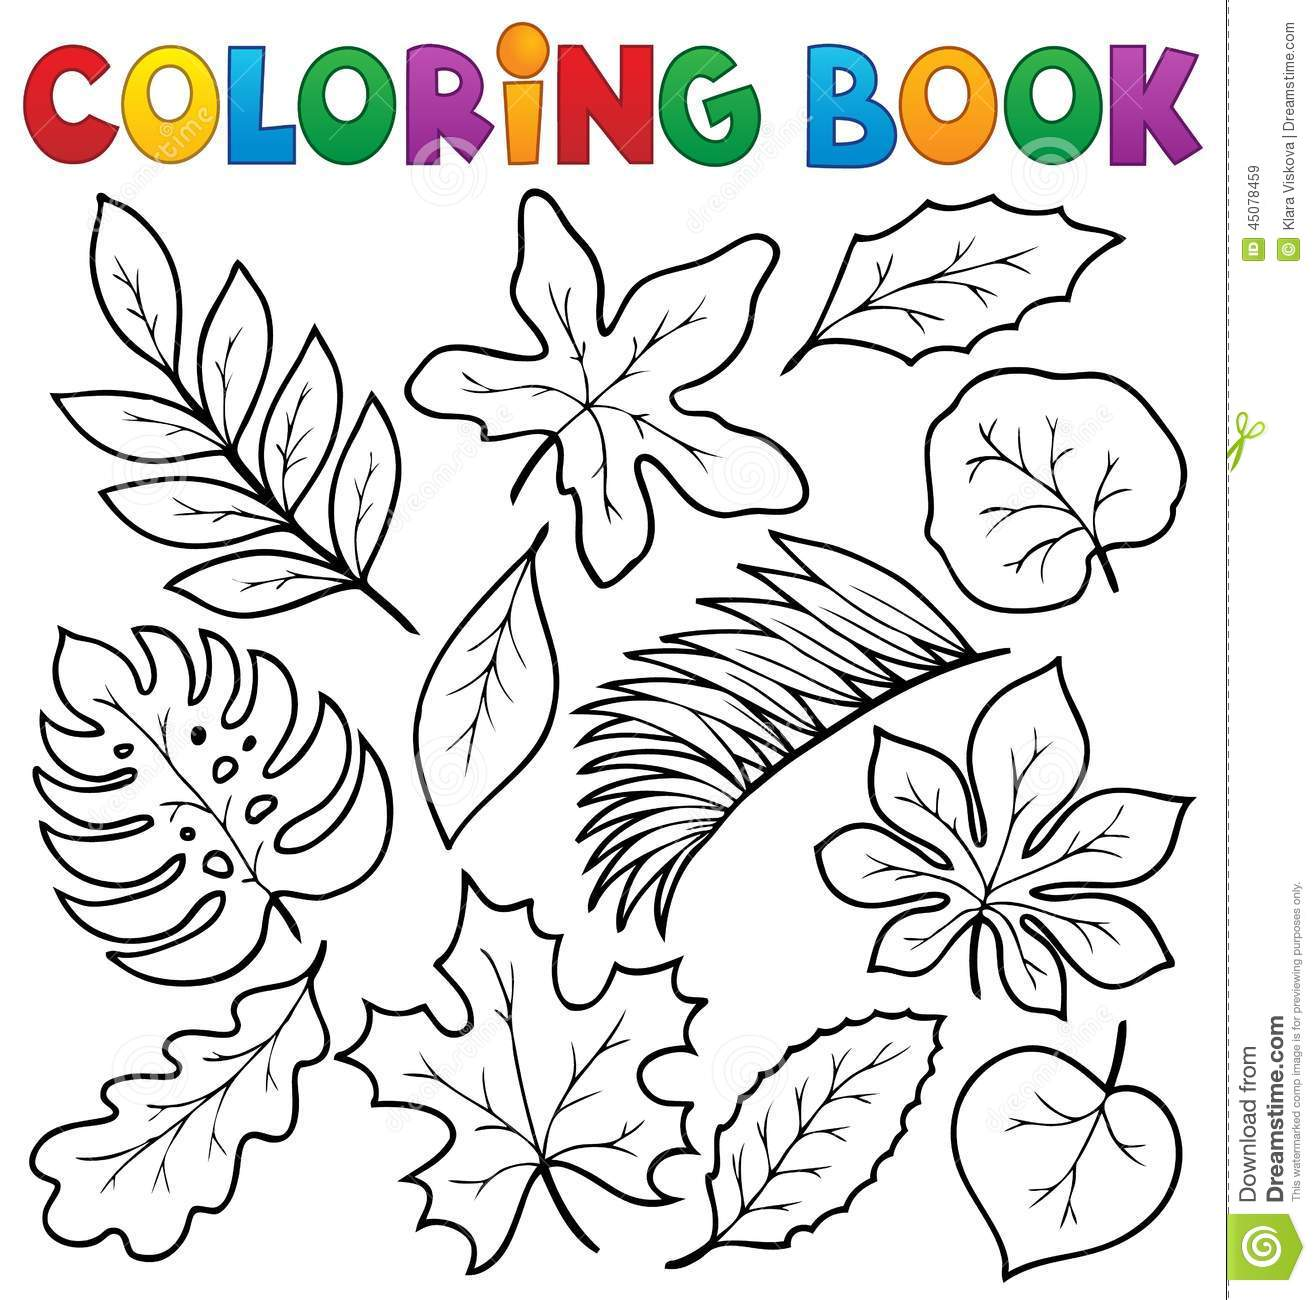 Coloring Book Leaves Theme 1 Stock Vector - Illustration of graphic ...